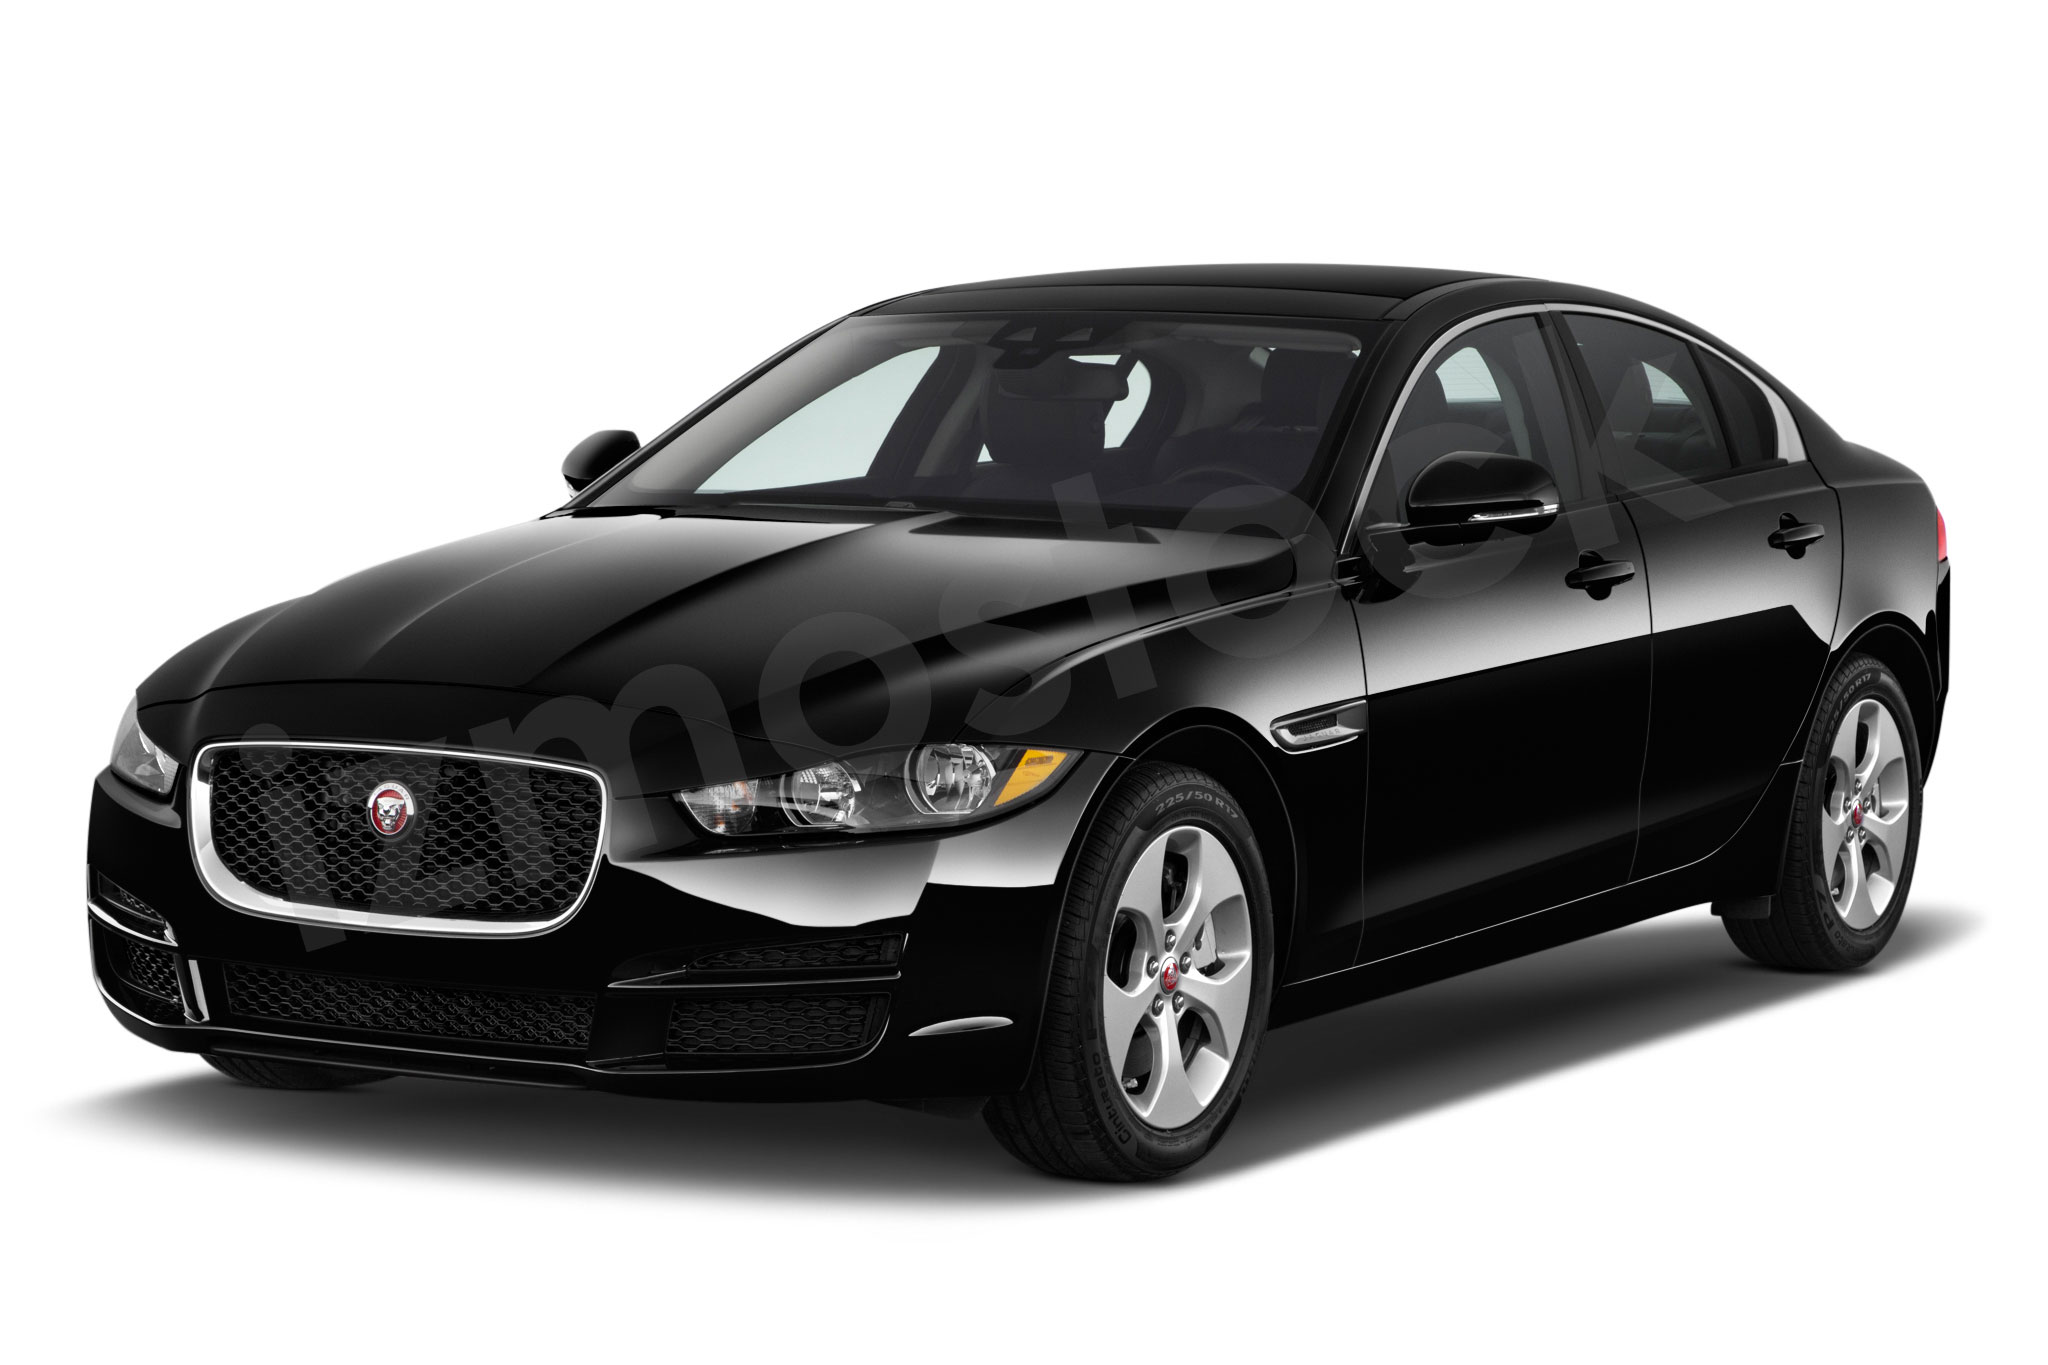 2017 jaguar xe review photos price interior video and specs. Black Bedroom Furniture Sets. Home Design Ideas